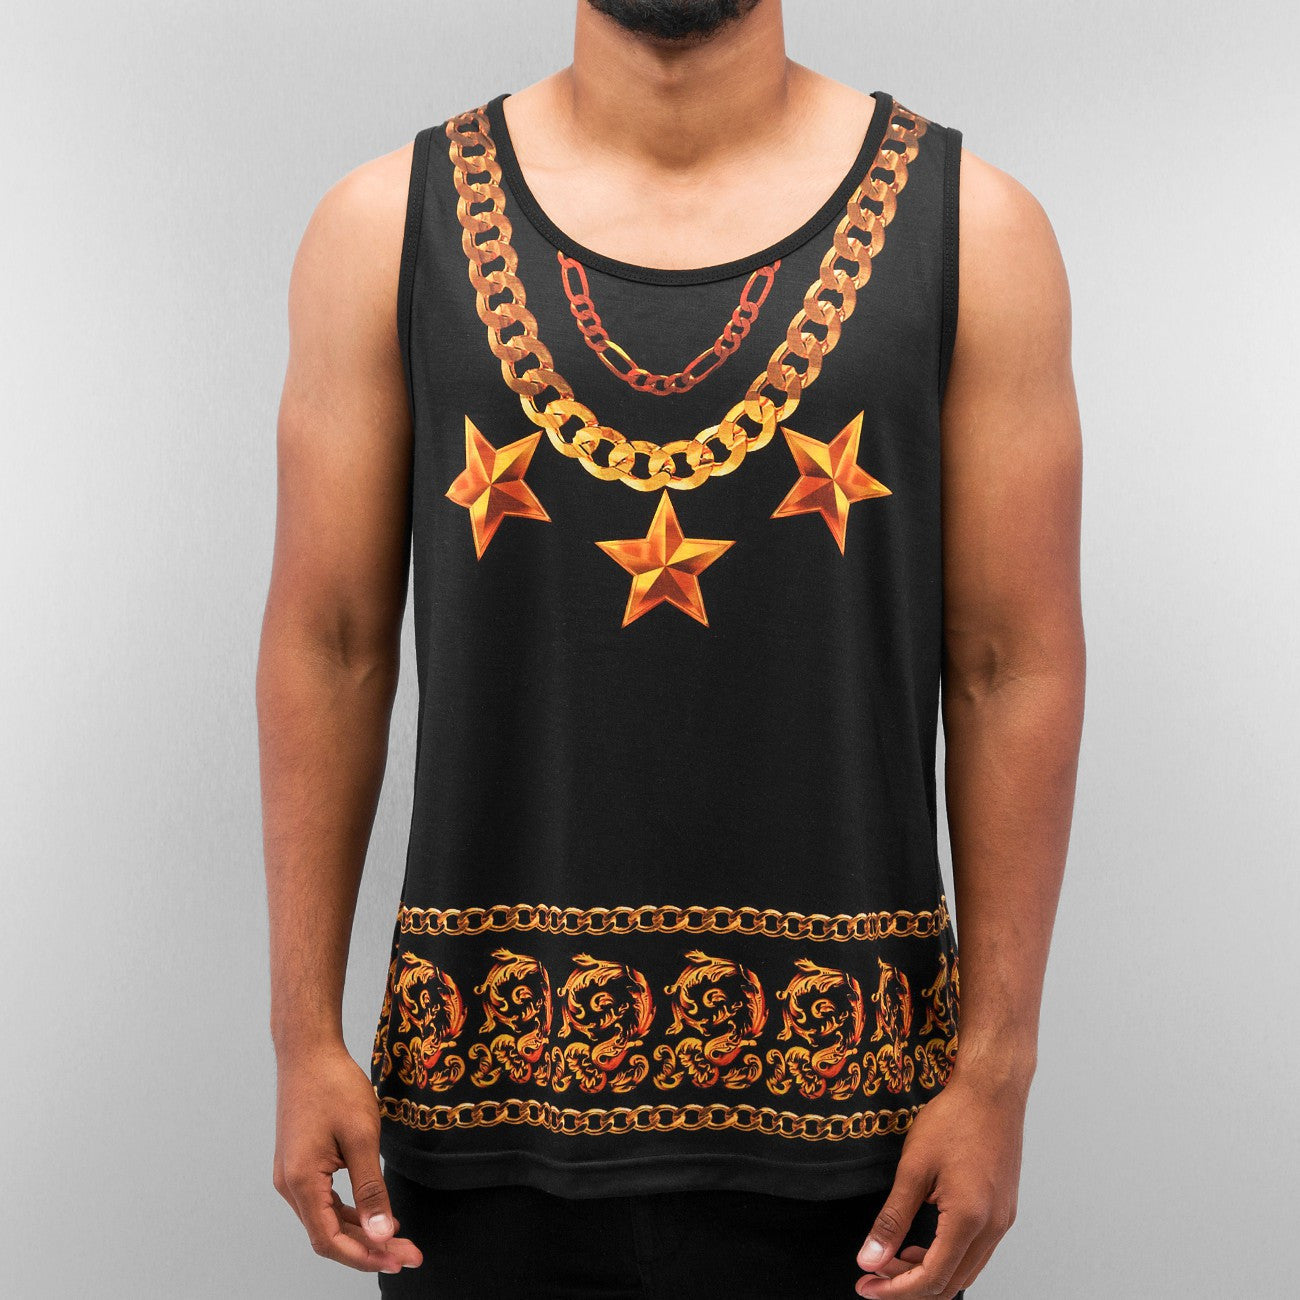 Bangastic Chain Tank Top  Black